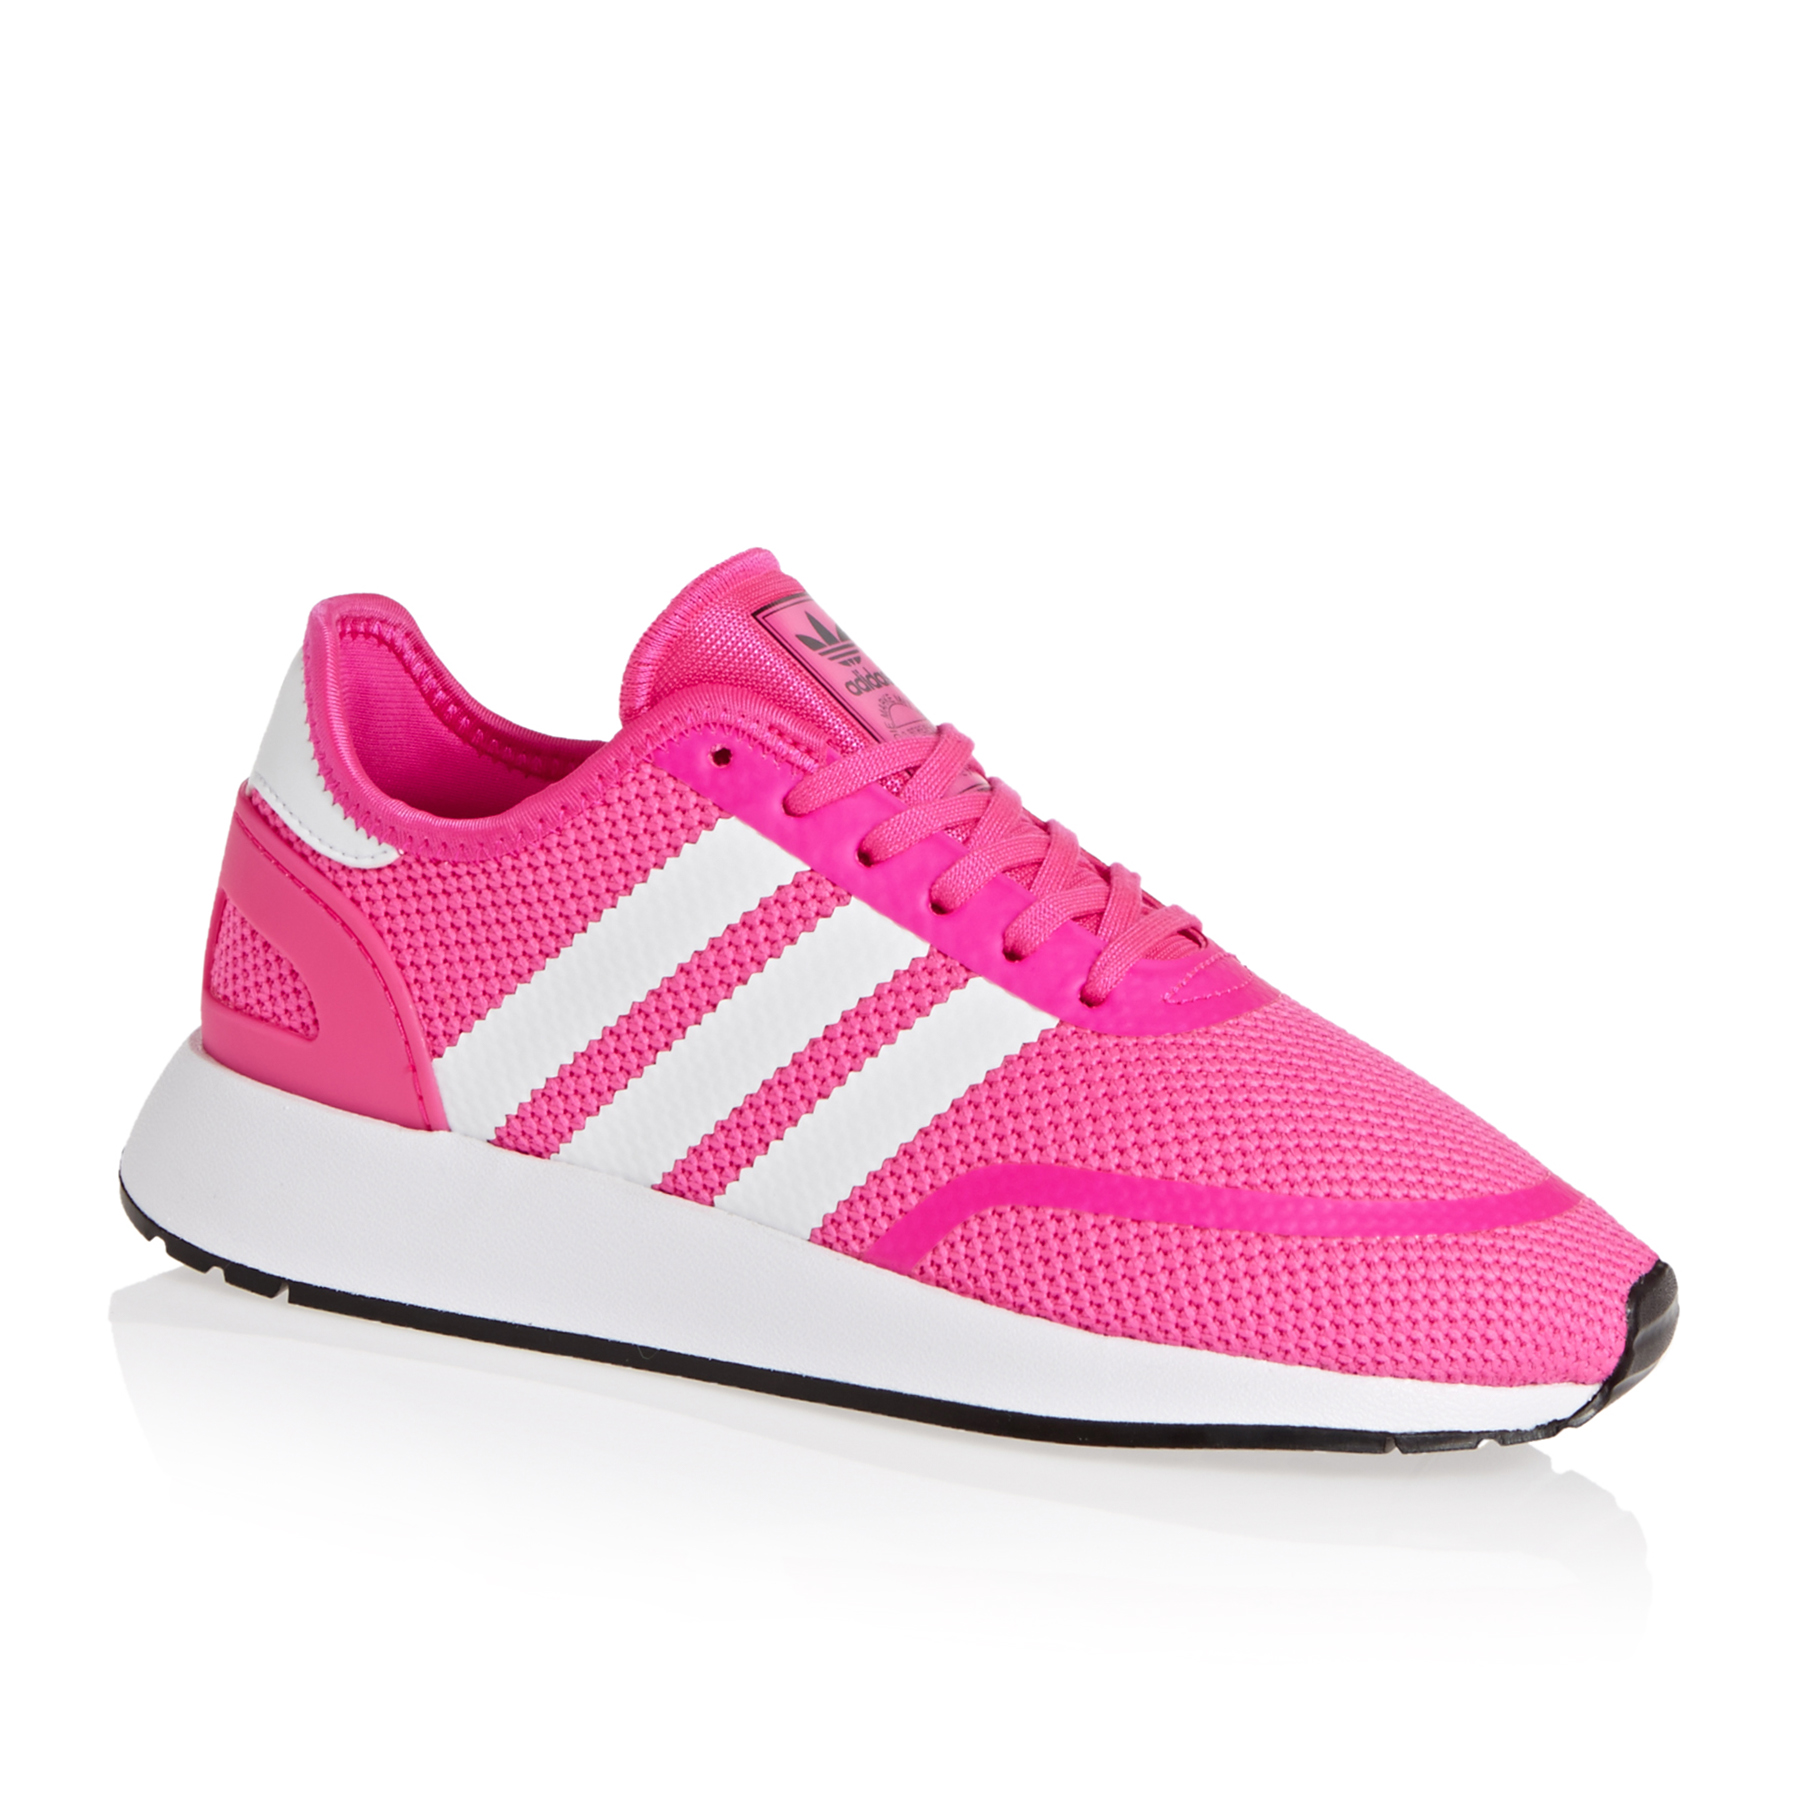 Adidas Originals N 5923 C Pink Girl Trainers Low Top